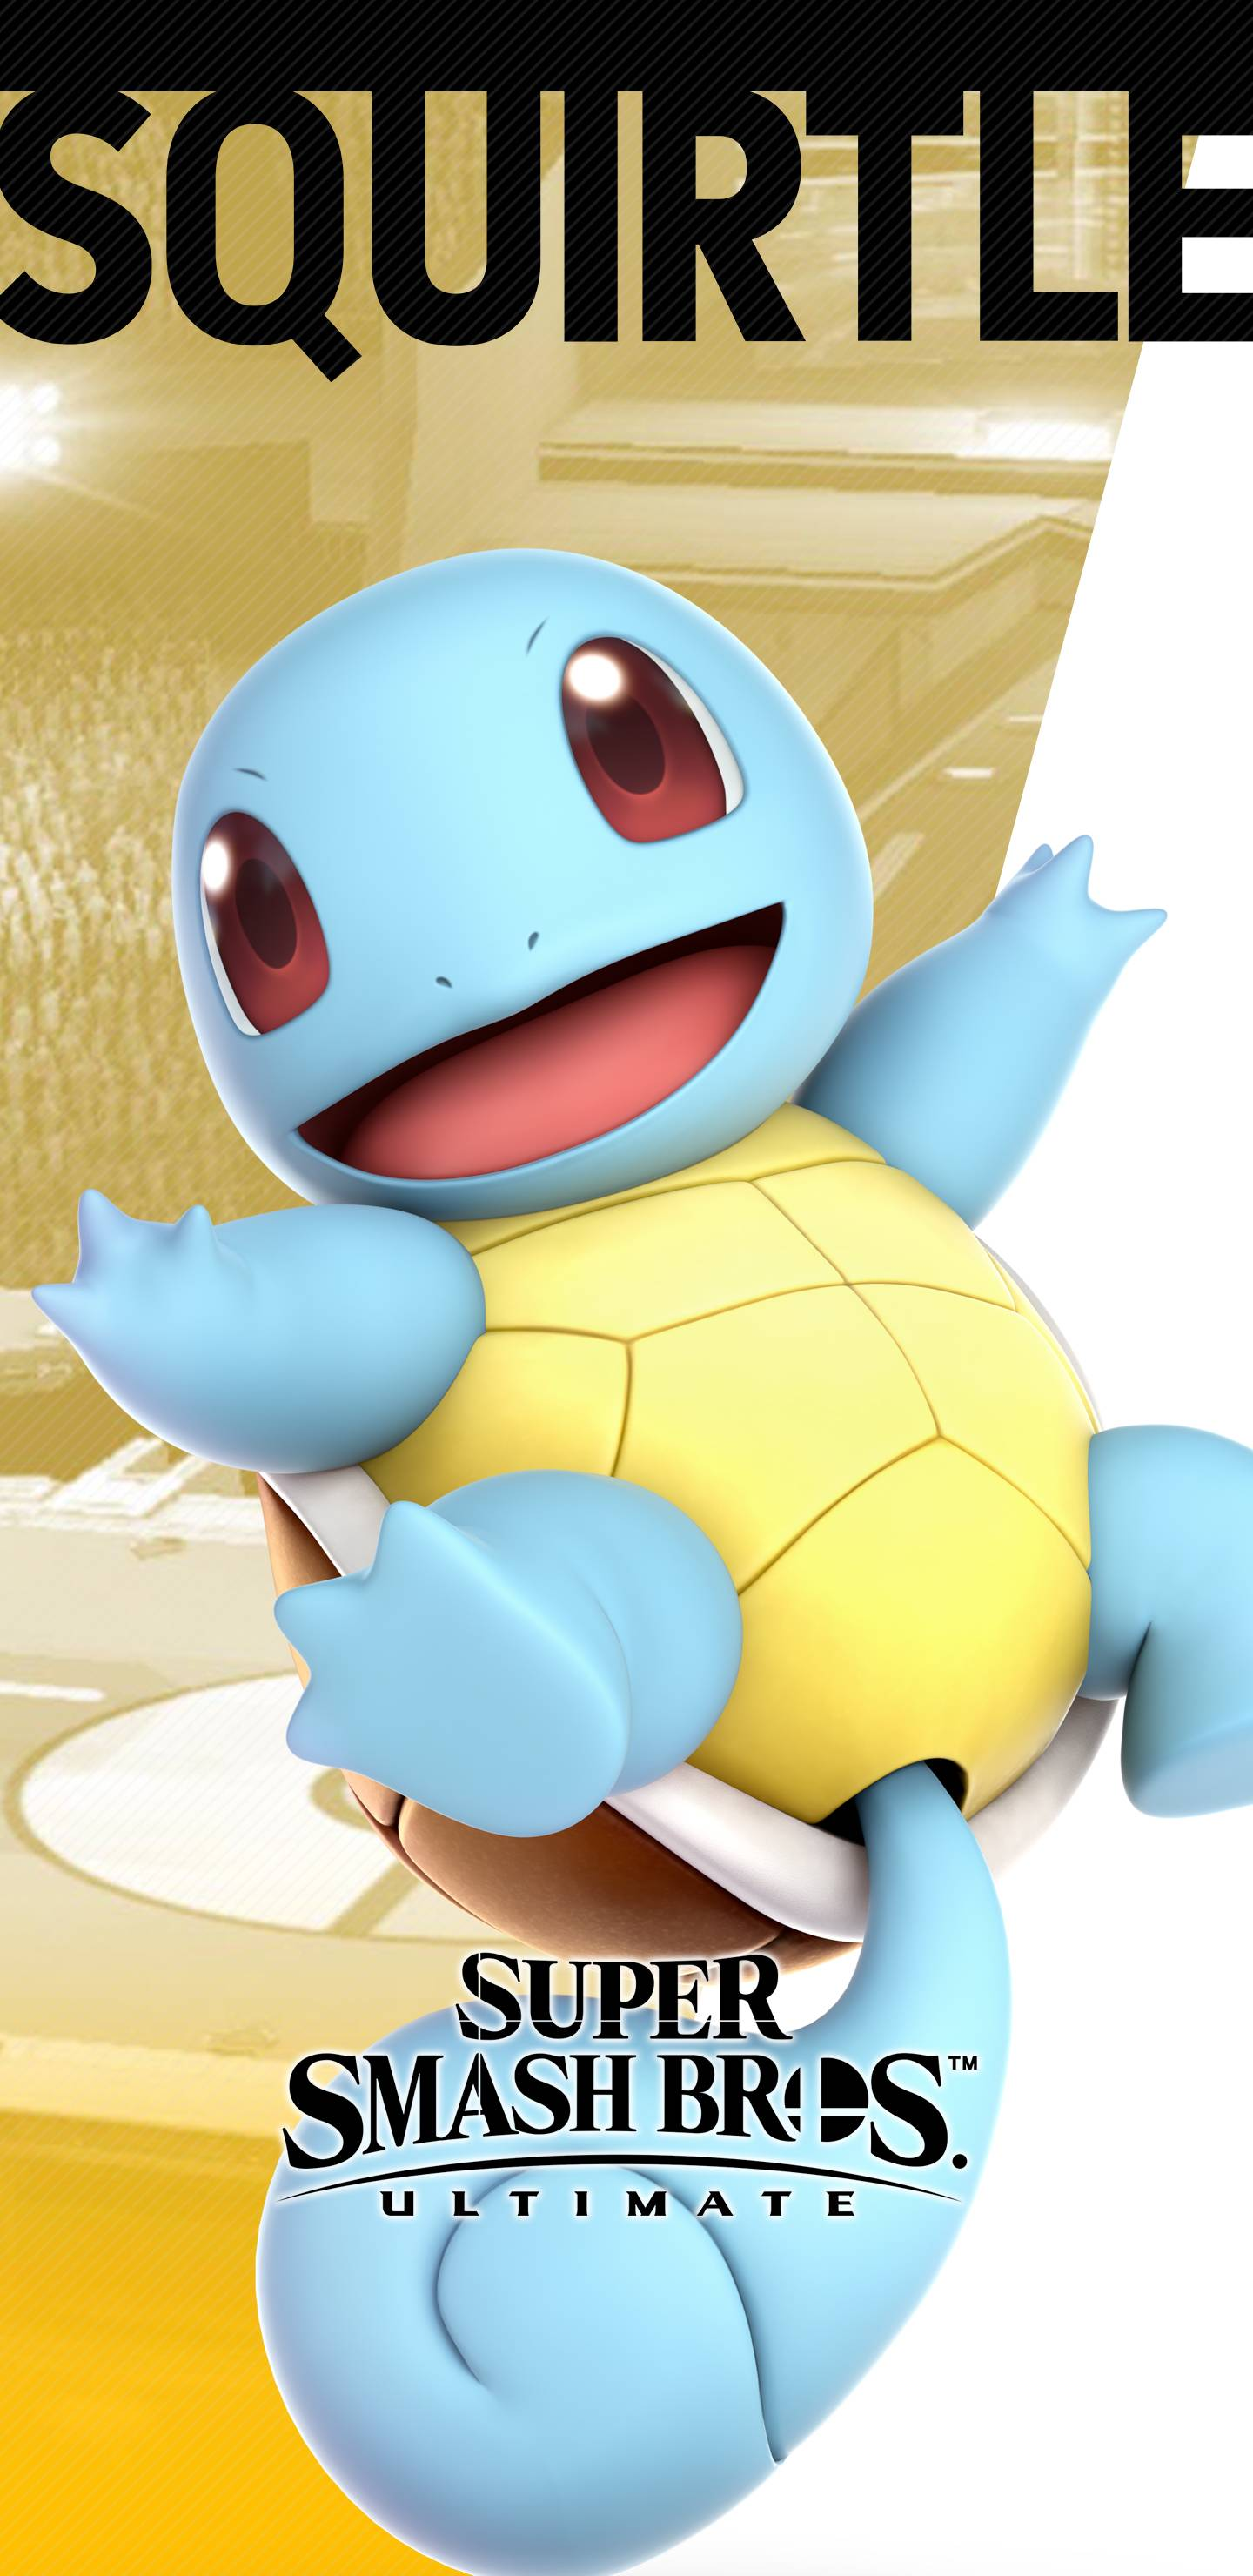 1440x2960 Super Smash Bros Ultimate Squirtle Wallpapers | Cat with Monocle